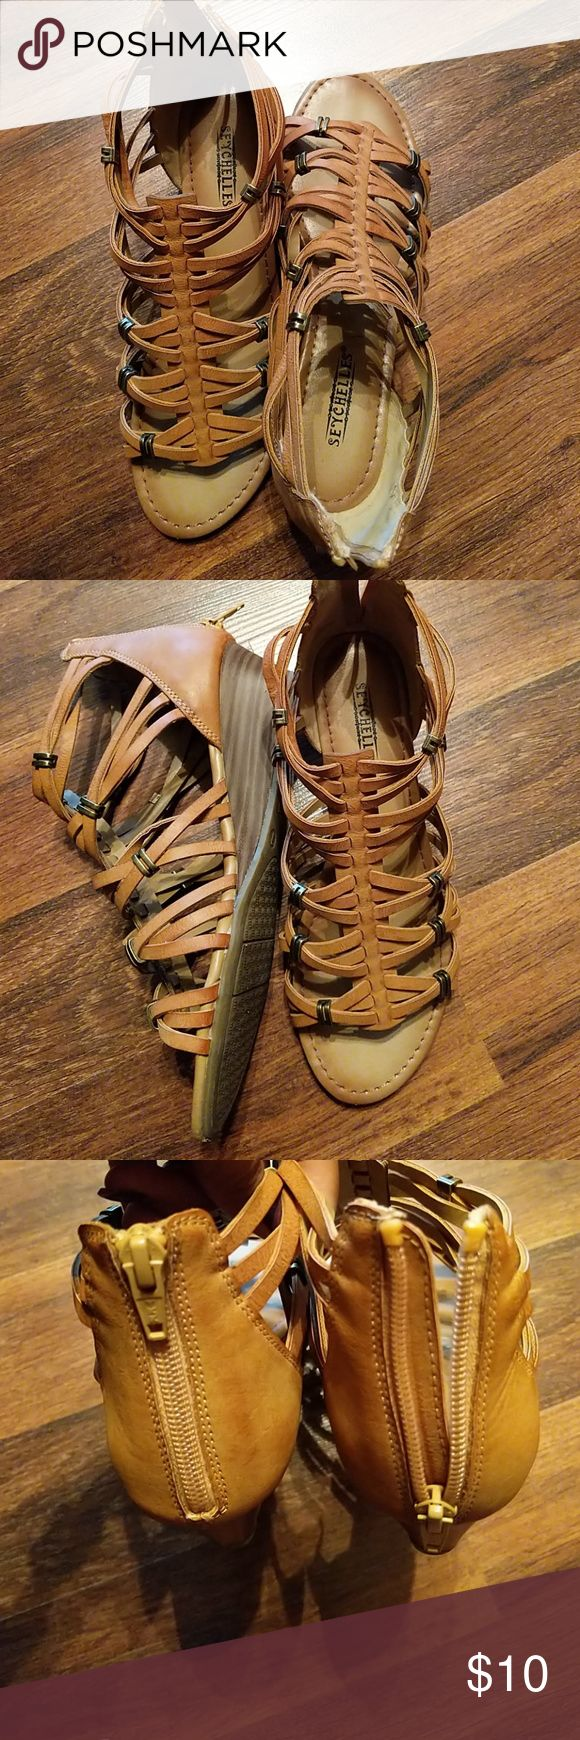 Sandals Camel color open toe sandals with bronze hardware.  Worn twice. Can be worn with shorts, or jeans. Very stylish and super cute. Reasonable offers accepted, fast shipping 😊 Seychelles Shoes Sandals